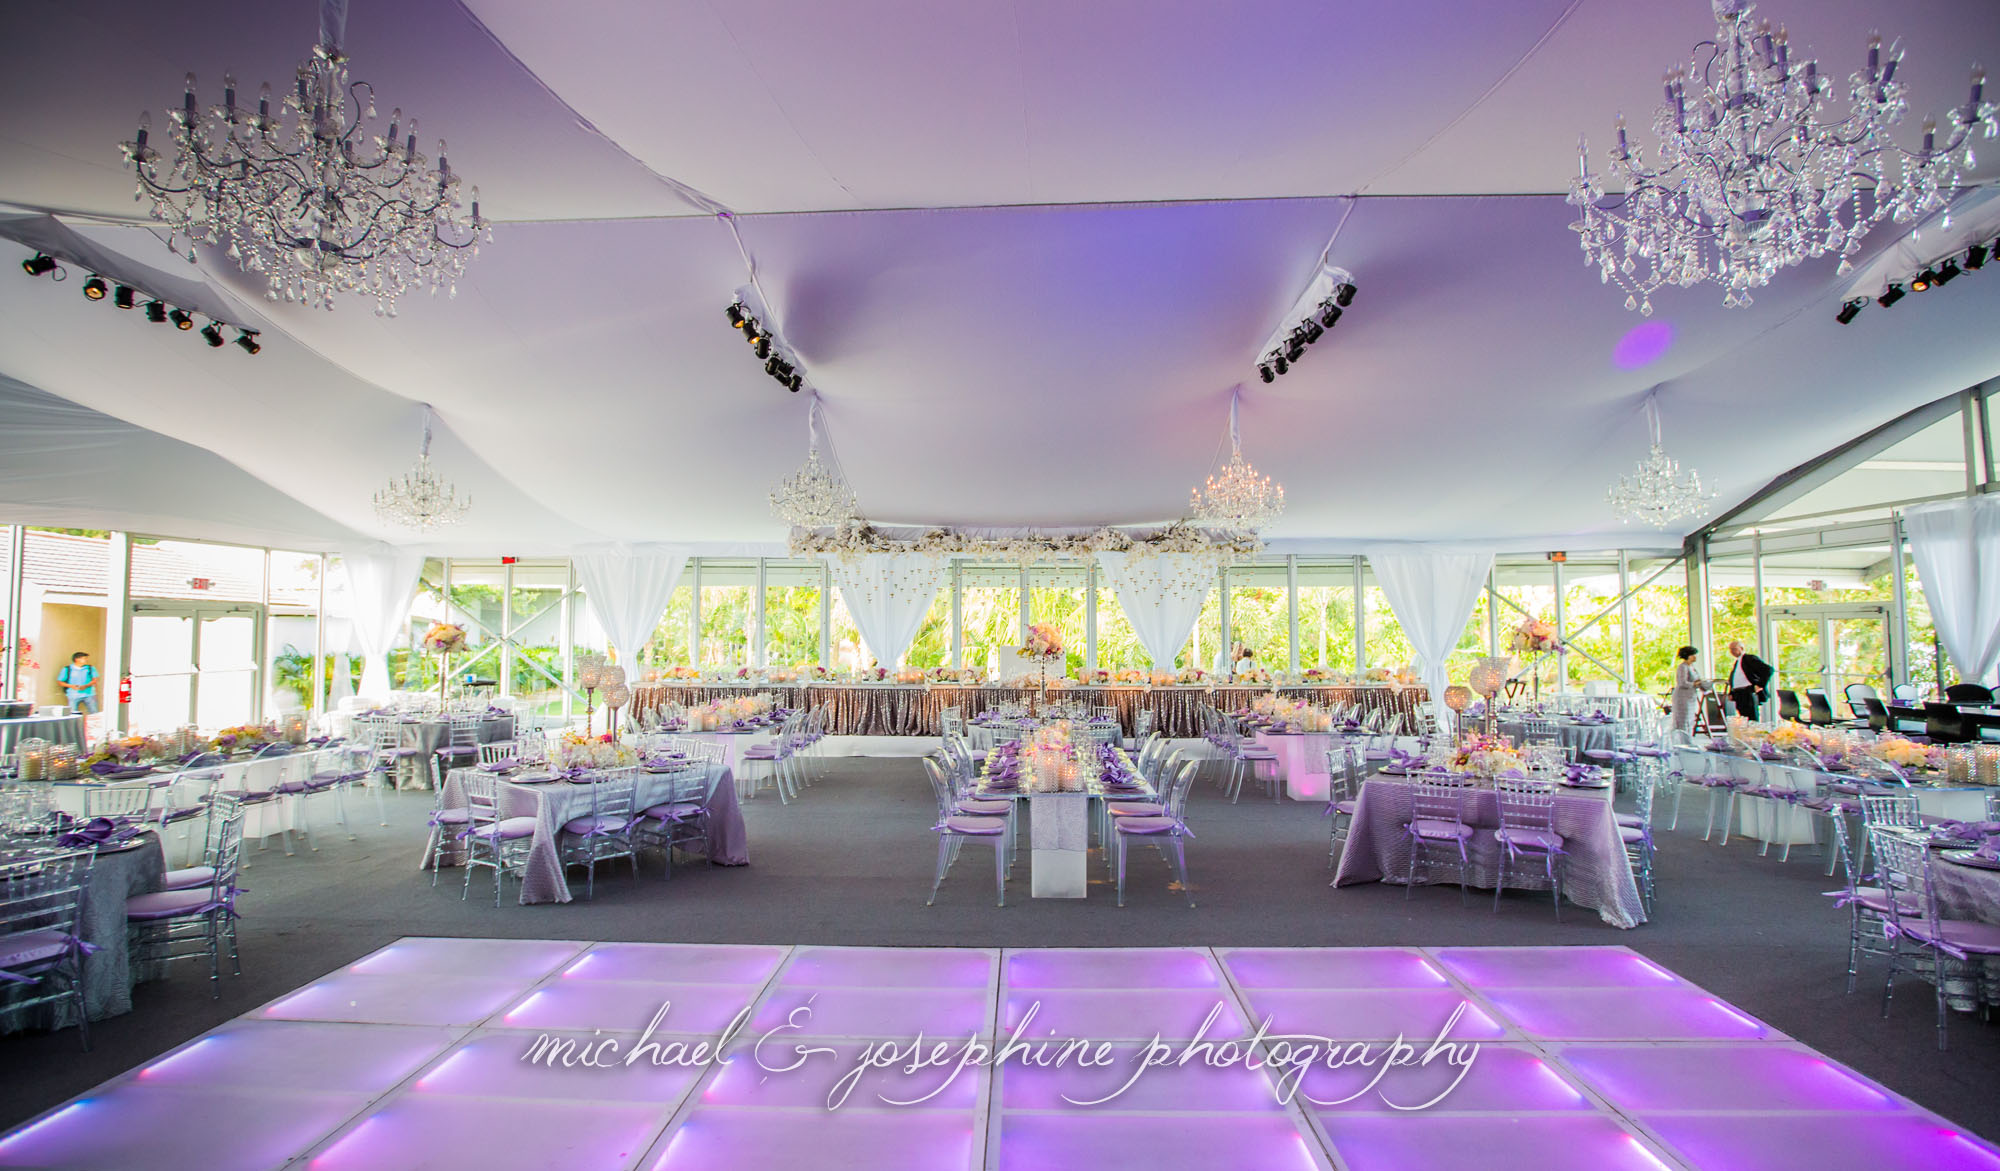 Dance Floor Rentals & Images tagged